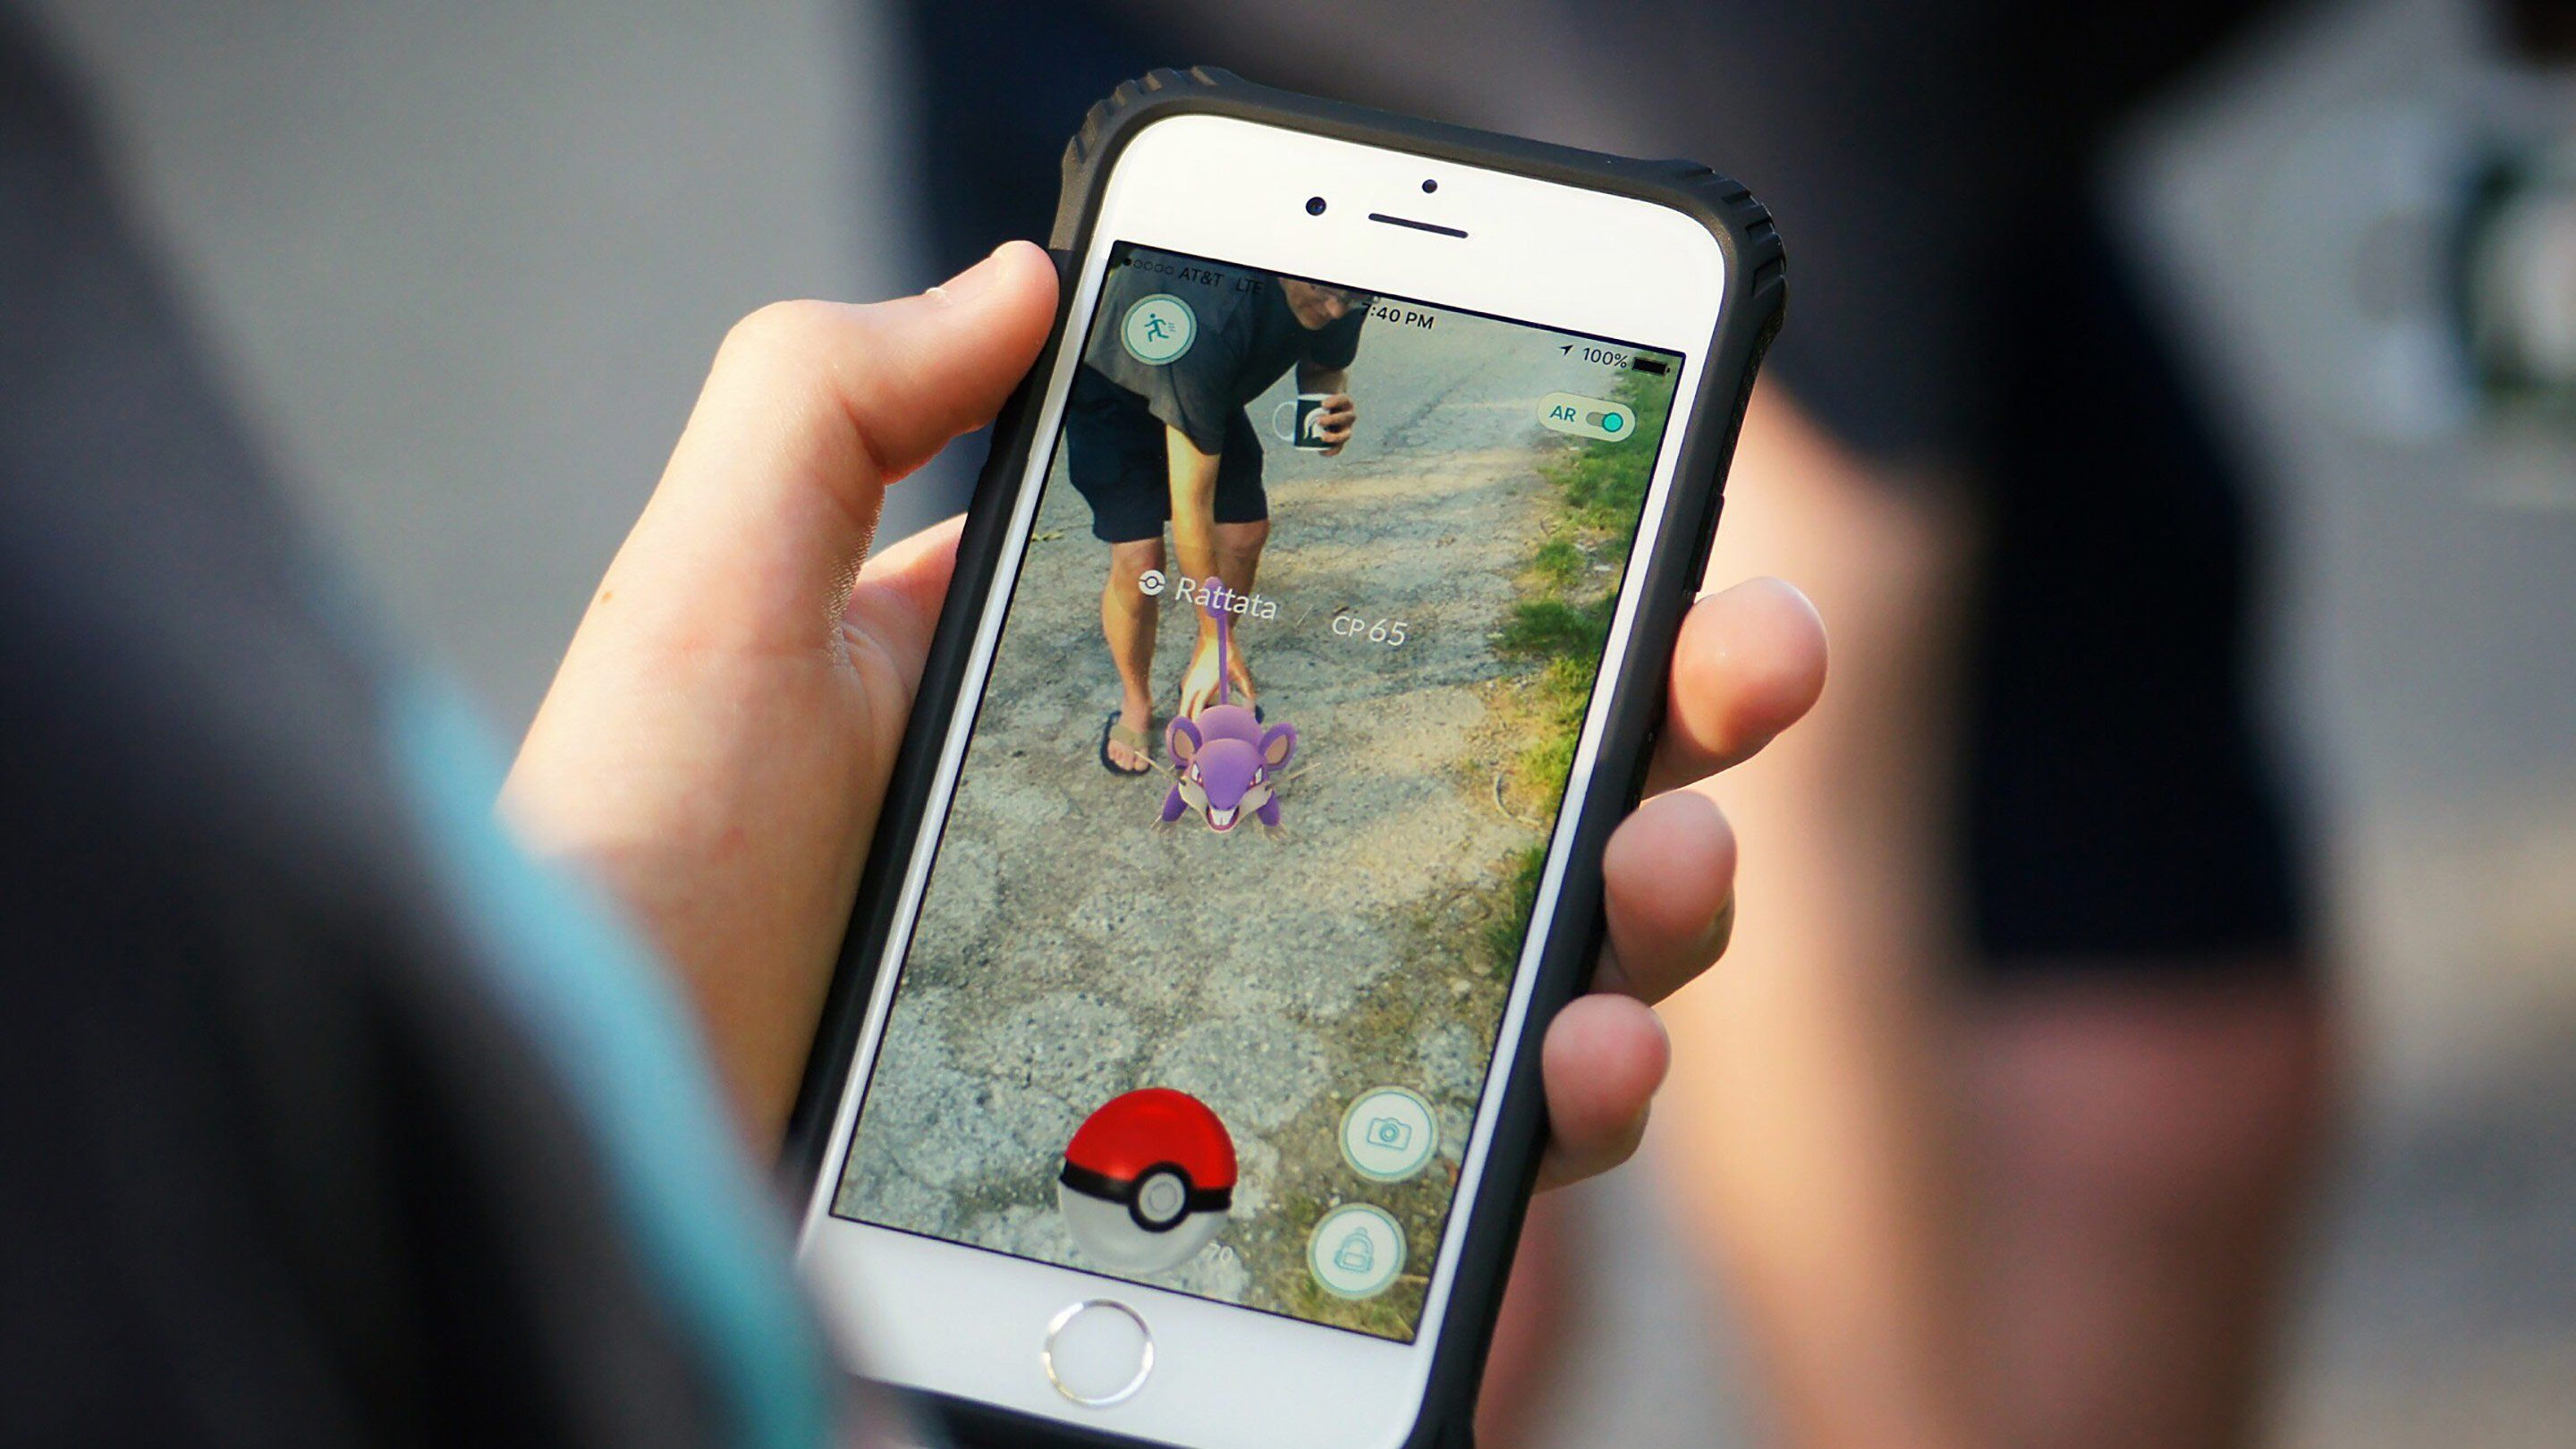 A person is holding a smartphone with Pokemon Go showing on their screen. They're taking a picture of someone bent over, holding a coffee cup, and touching a purple rat Pokemon.